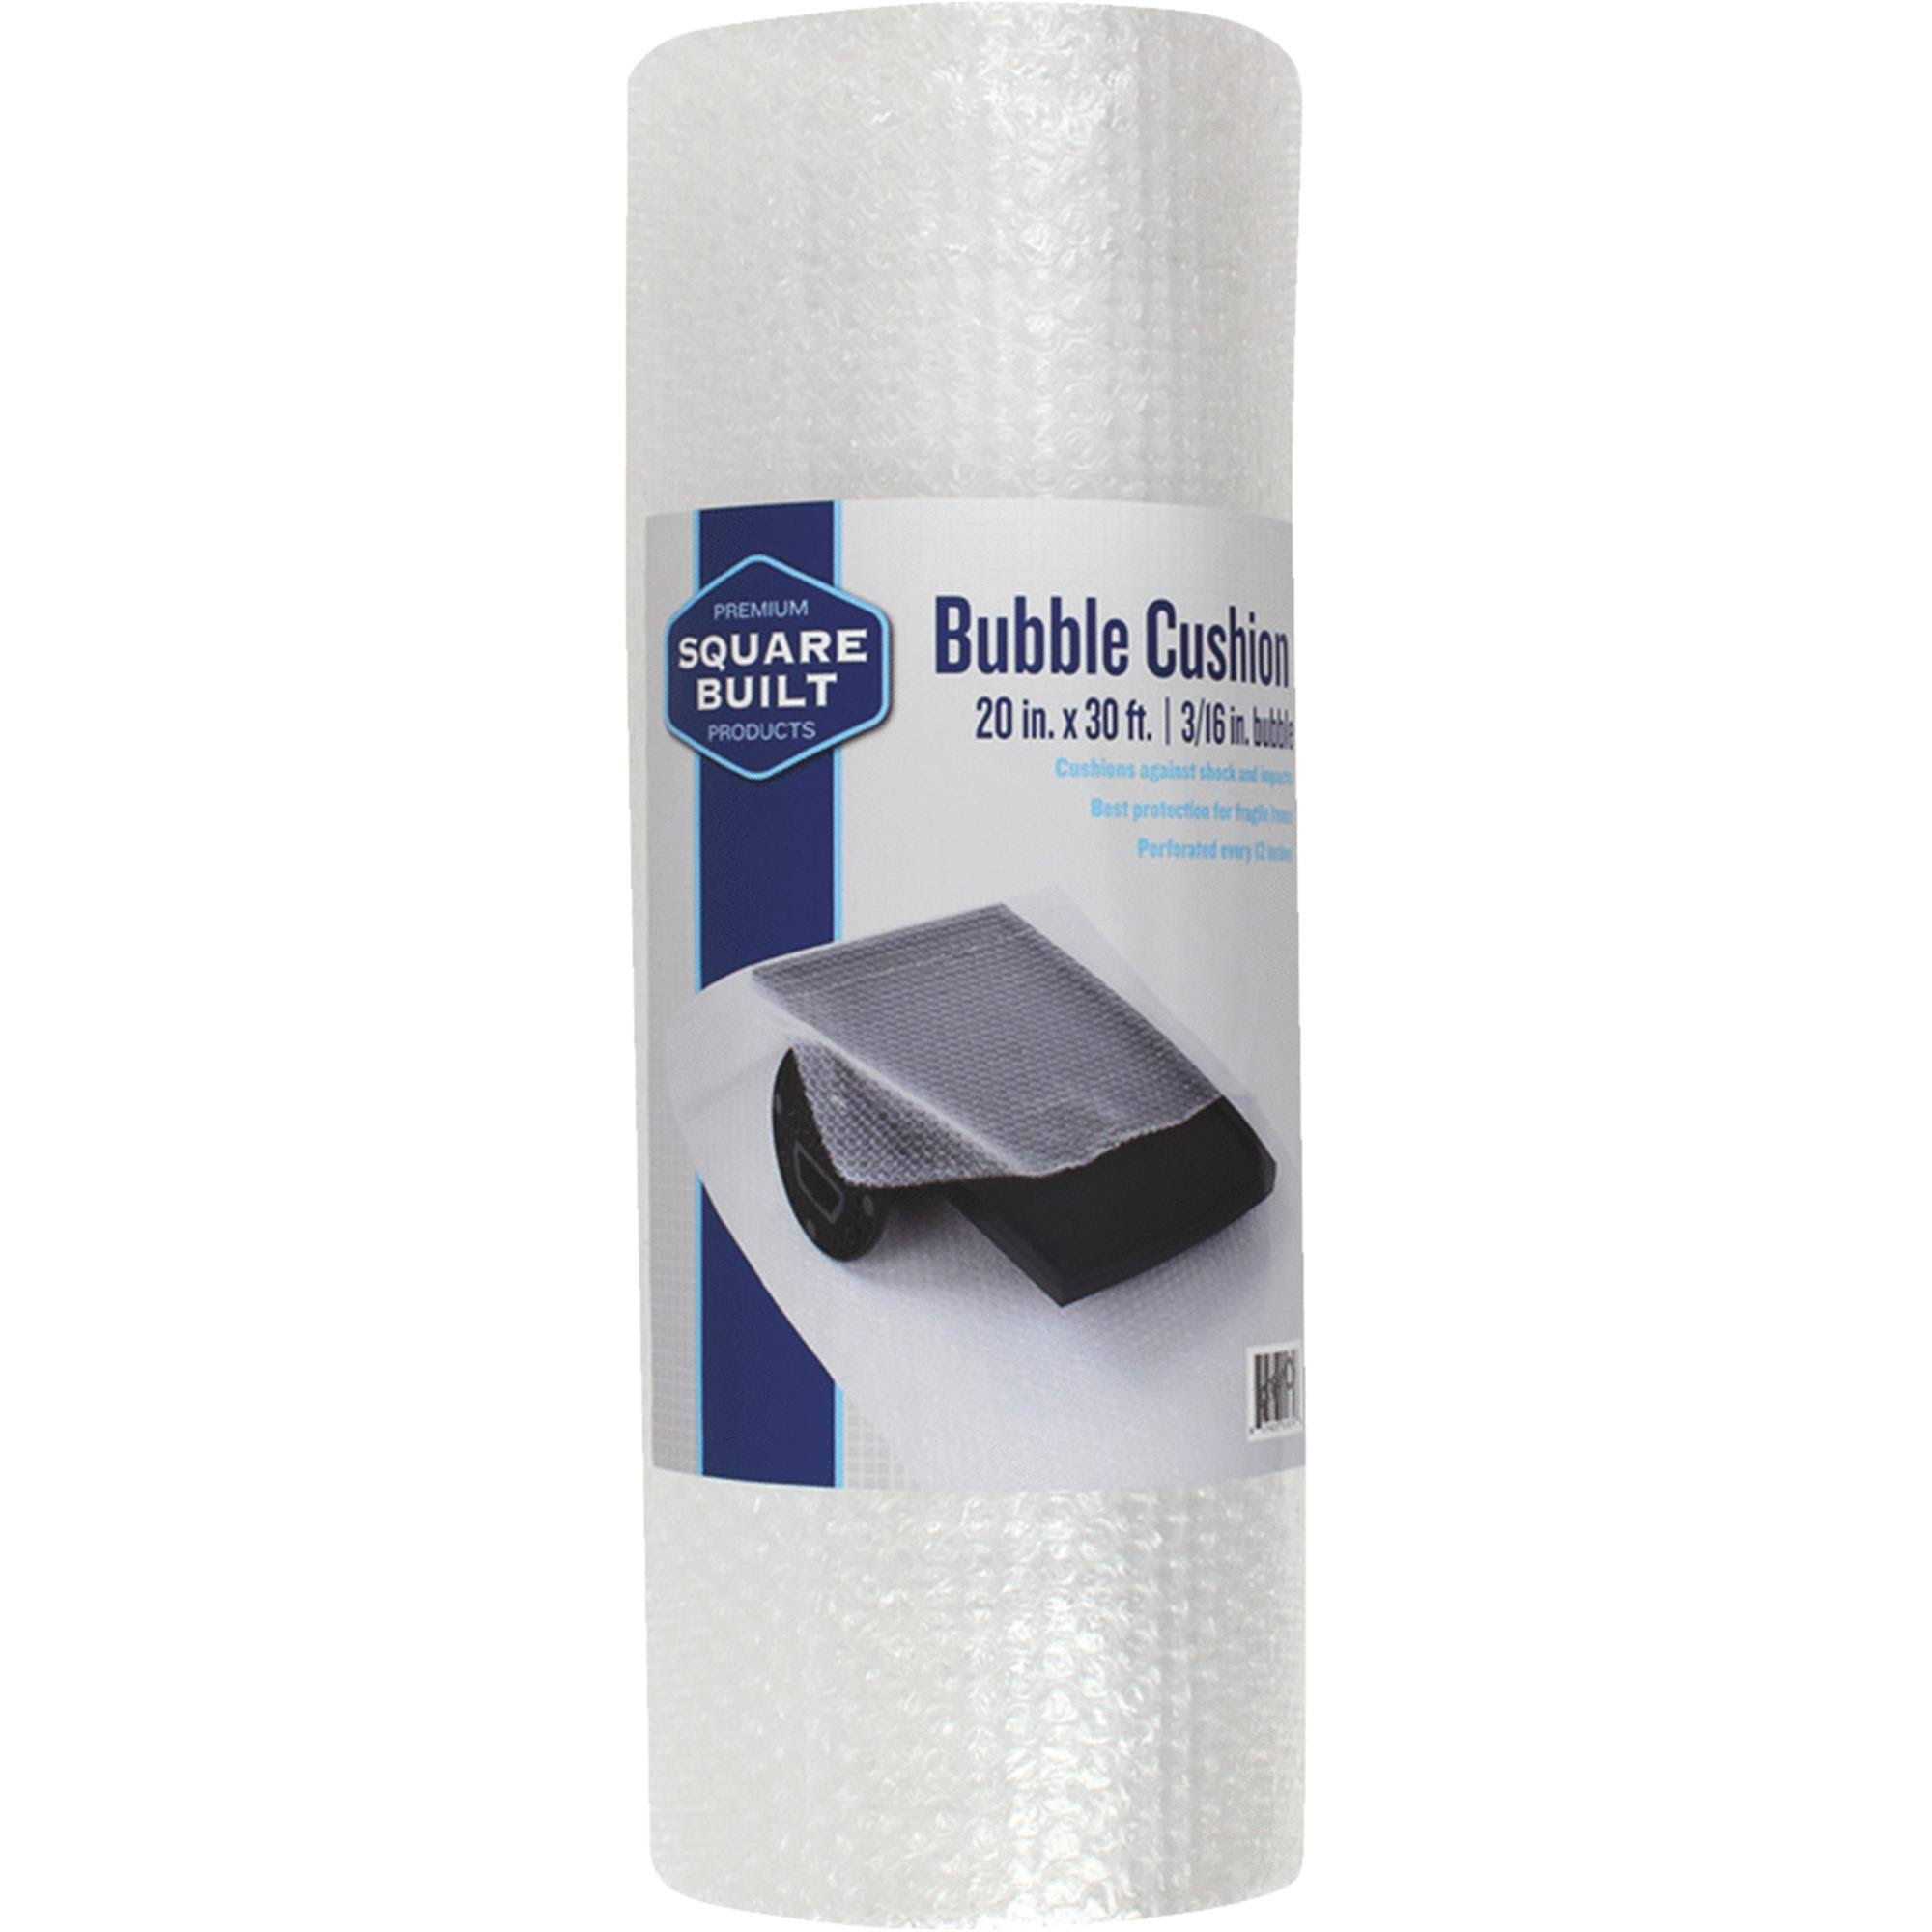 Square Built Cushion Bubble Wrap, SBA3162030B